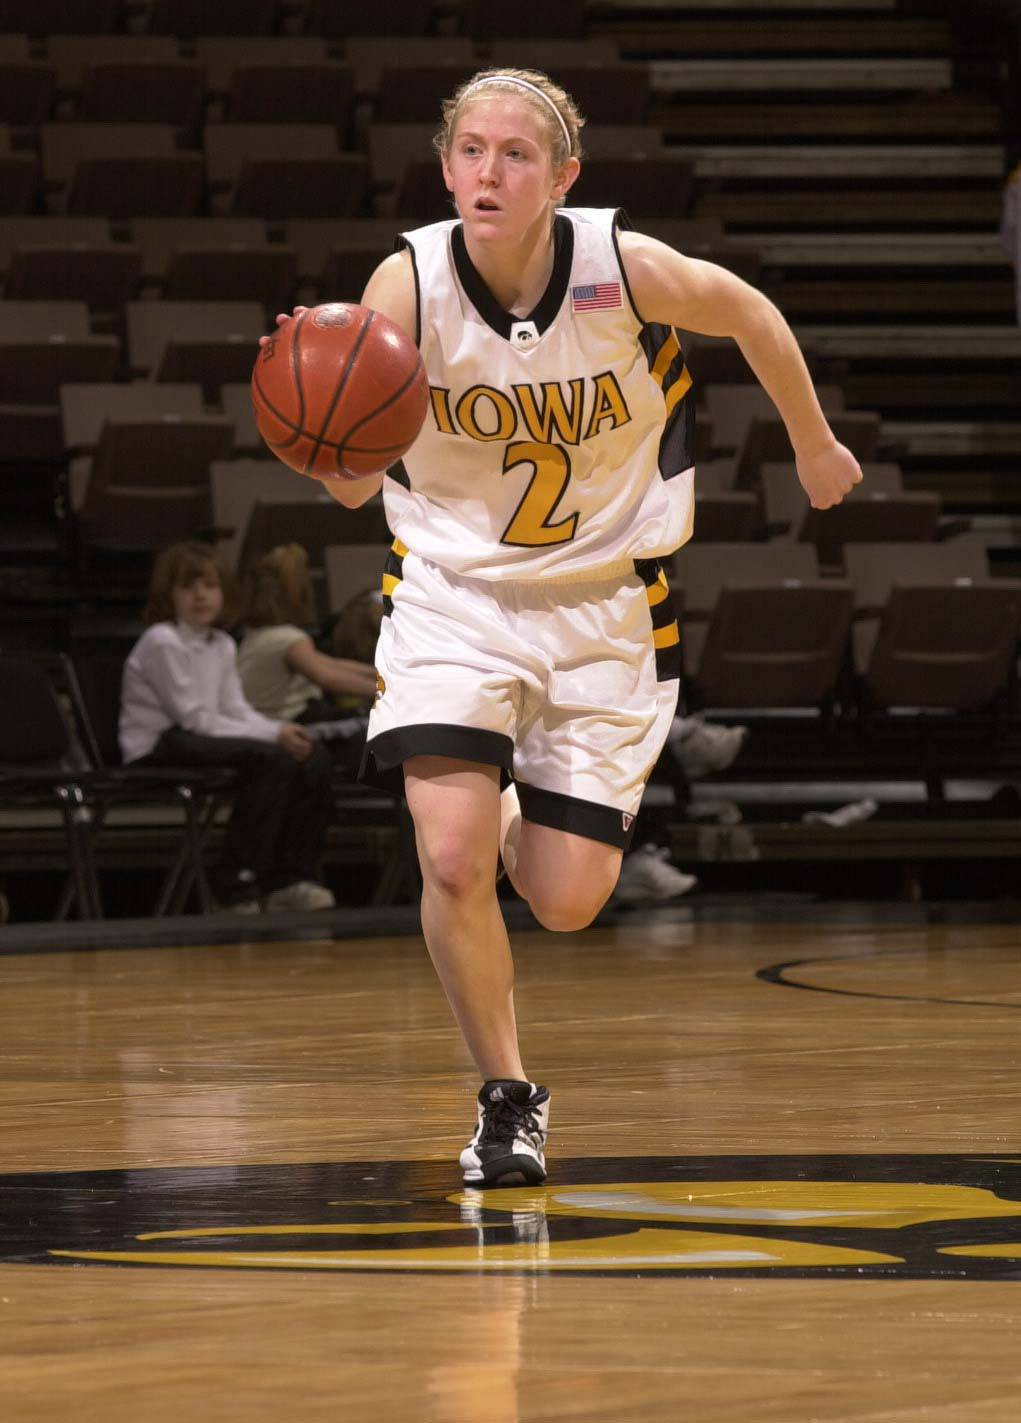 Kristi Faulkner, former Glenbard West all-state basketball player, now playing at Iowa. 2002